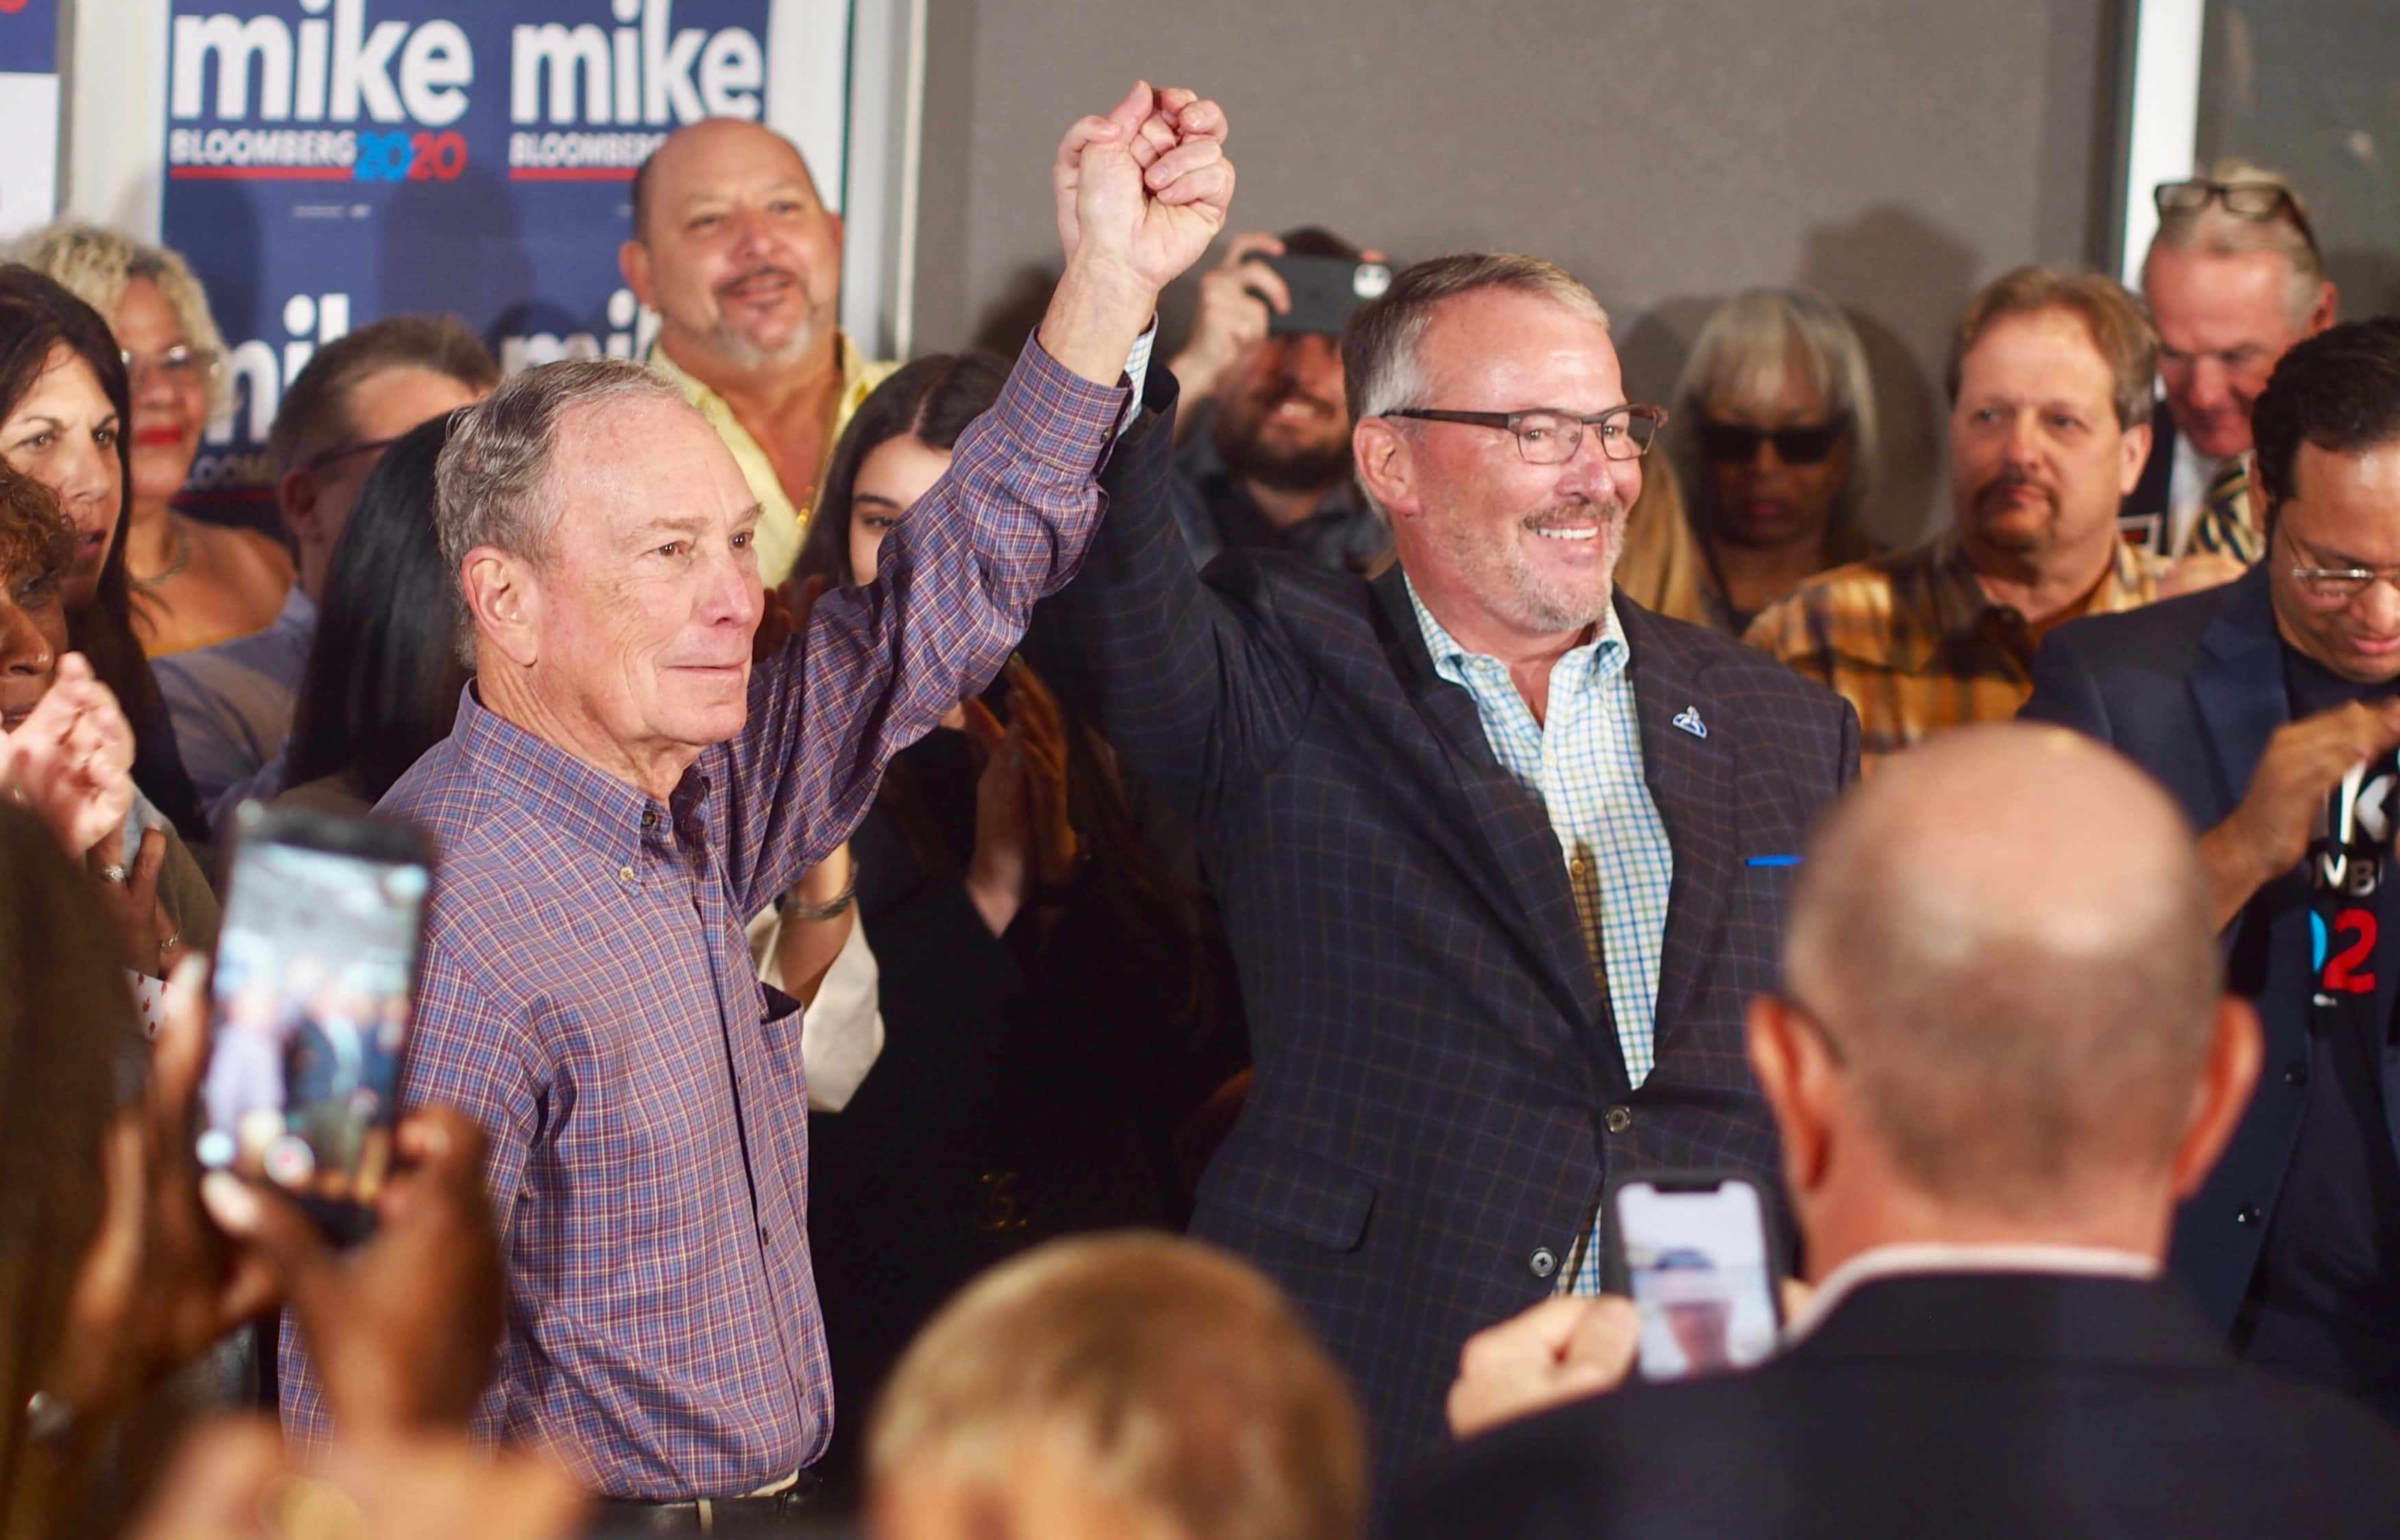 Mike-Bloomberg-and-Buddy-Dyer-1-1-3500x2246.jpg